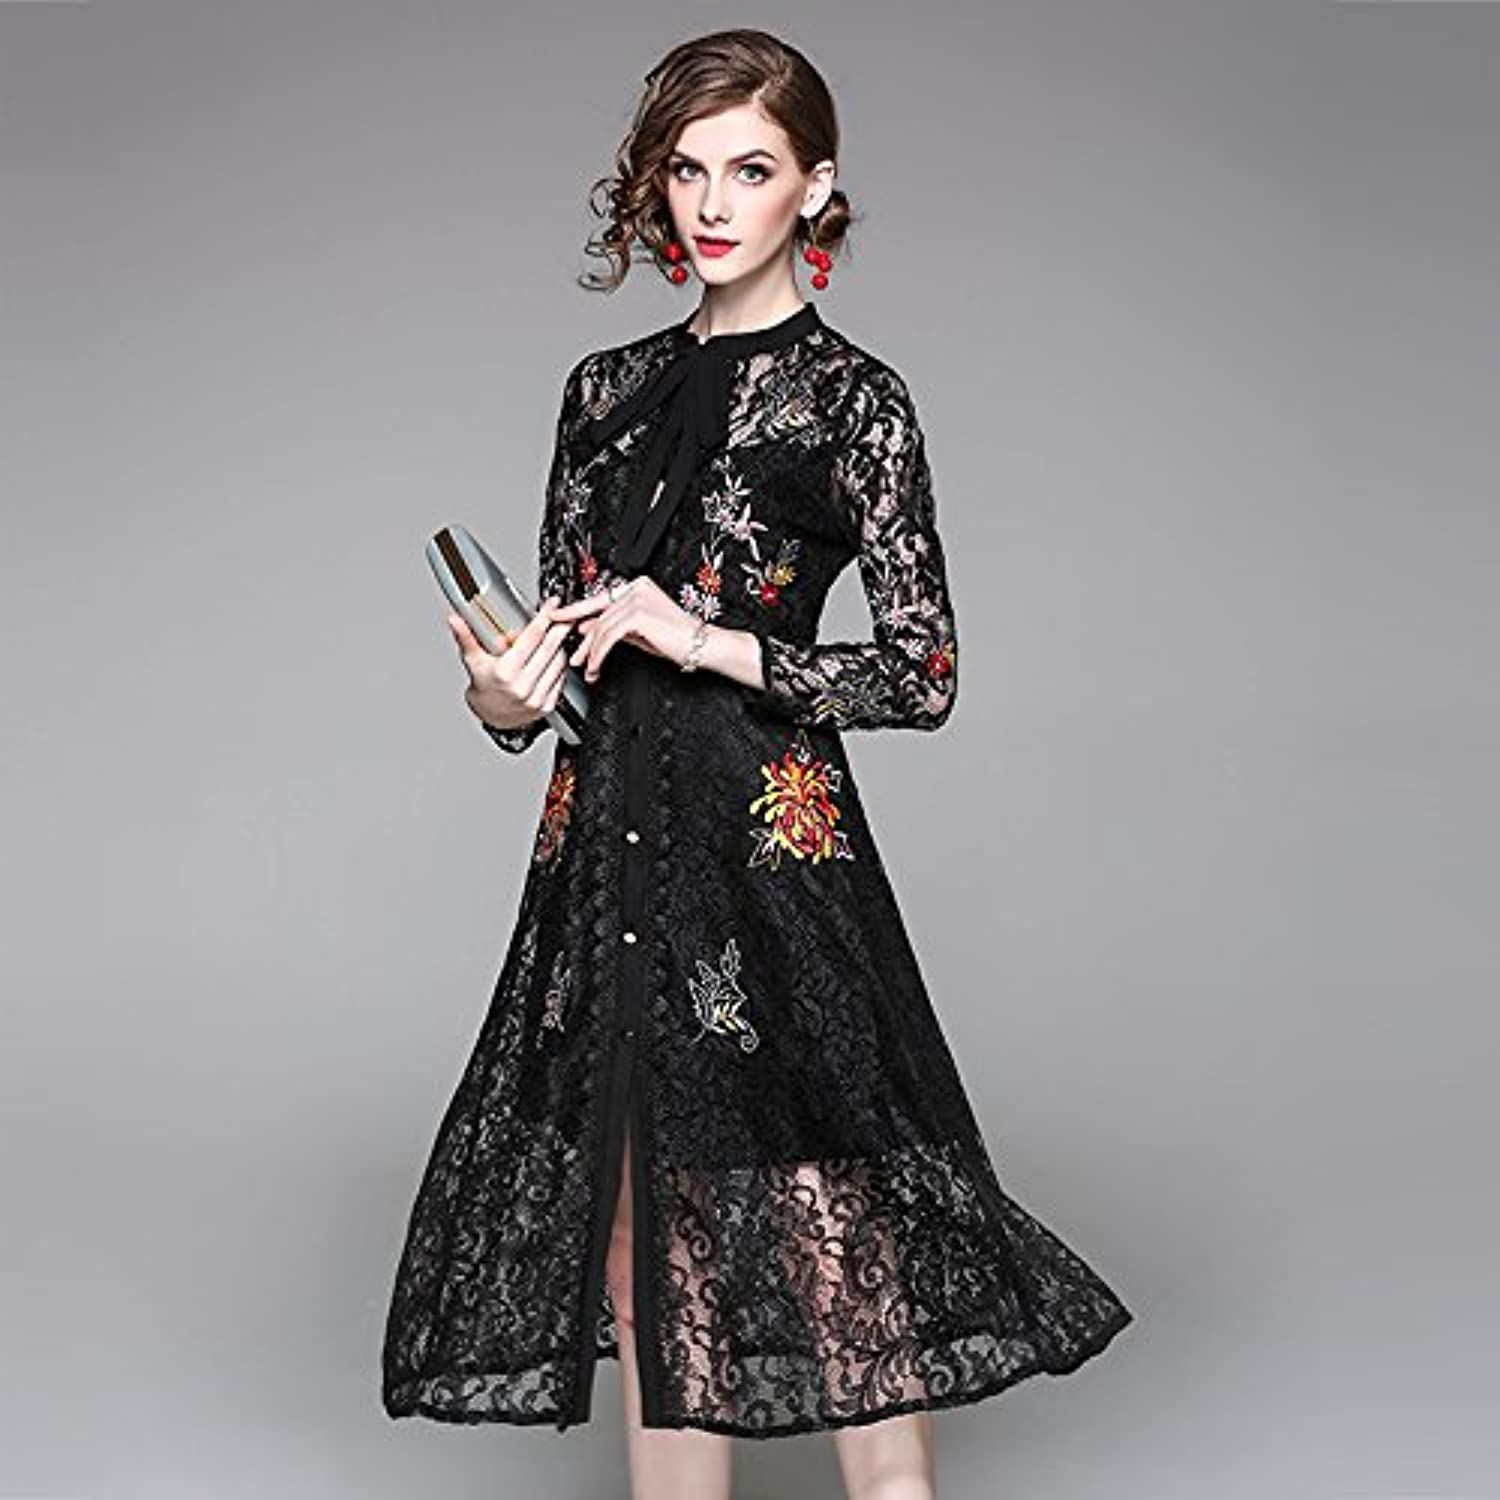 Xuanku Neue Weibliche Aristokratischen Temperament Elegante Göttin Lace Long-Sleeved Long-Sleeved Long-Sleeved Kleider B07561FQRK  Moderne und elegante Mode 68b26f